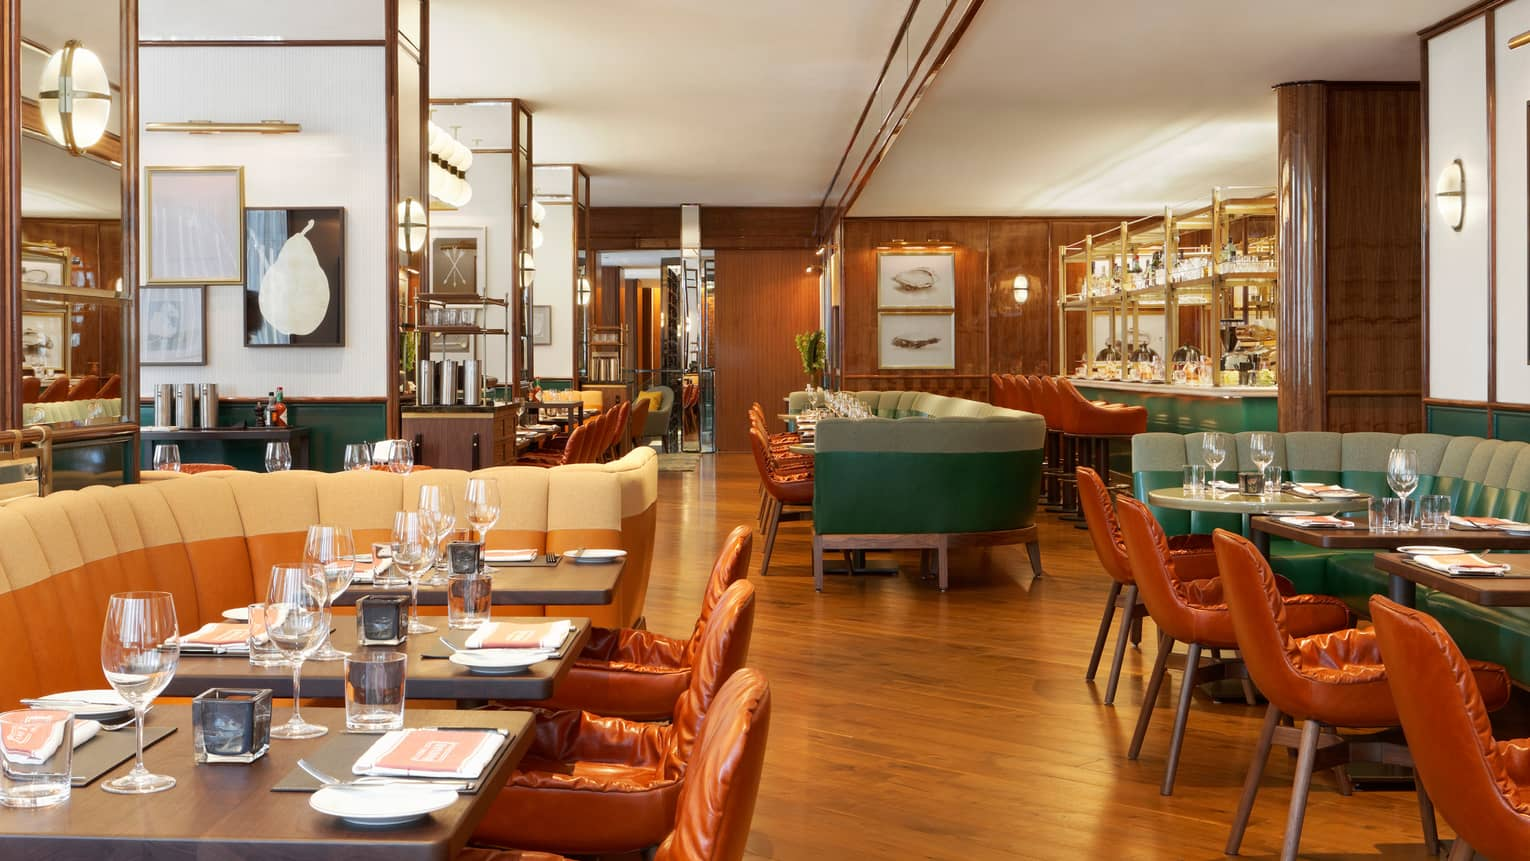 Cafe Boulud dining room with leather chairs, banquettes, sunny dining room